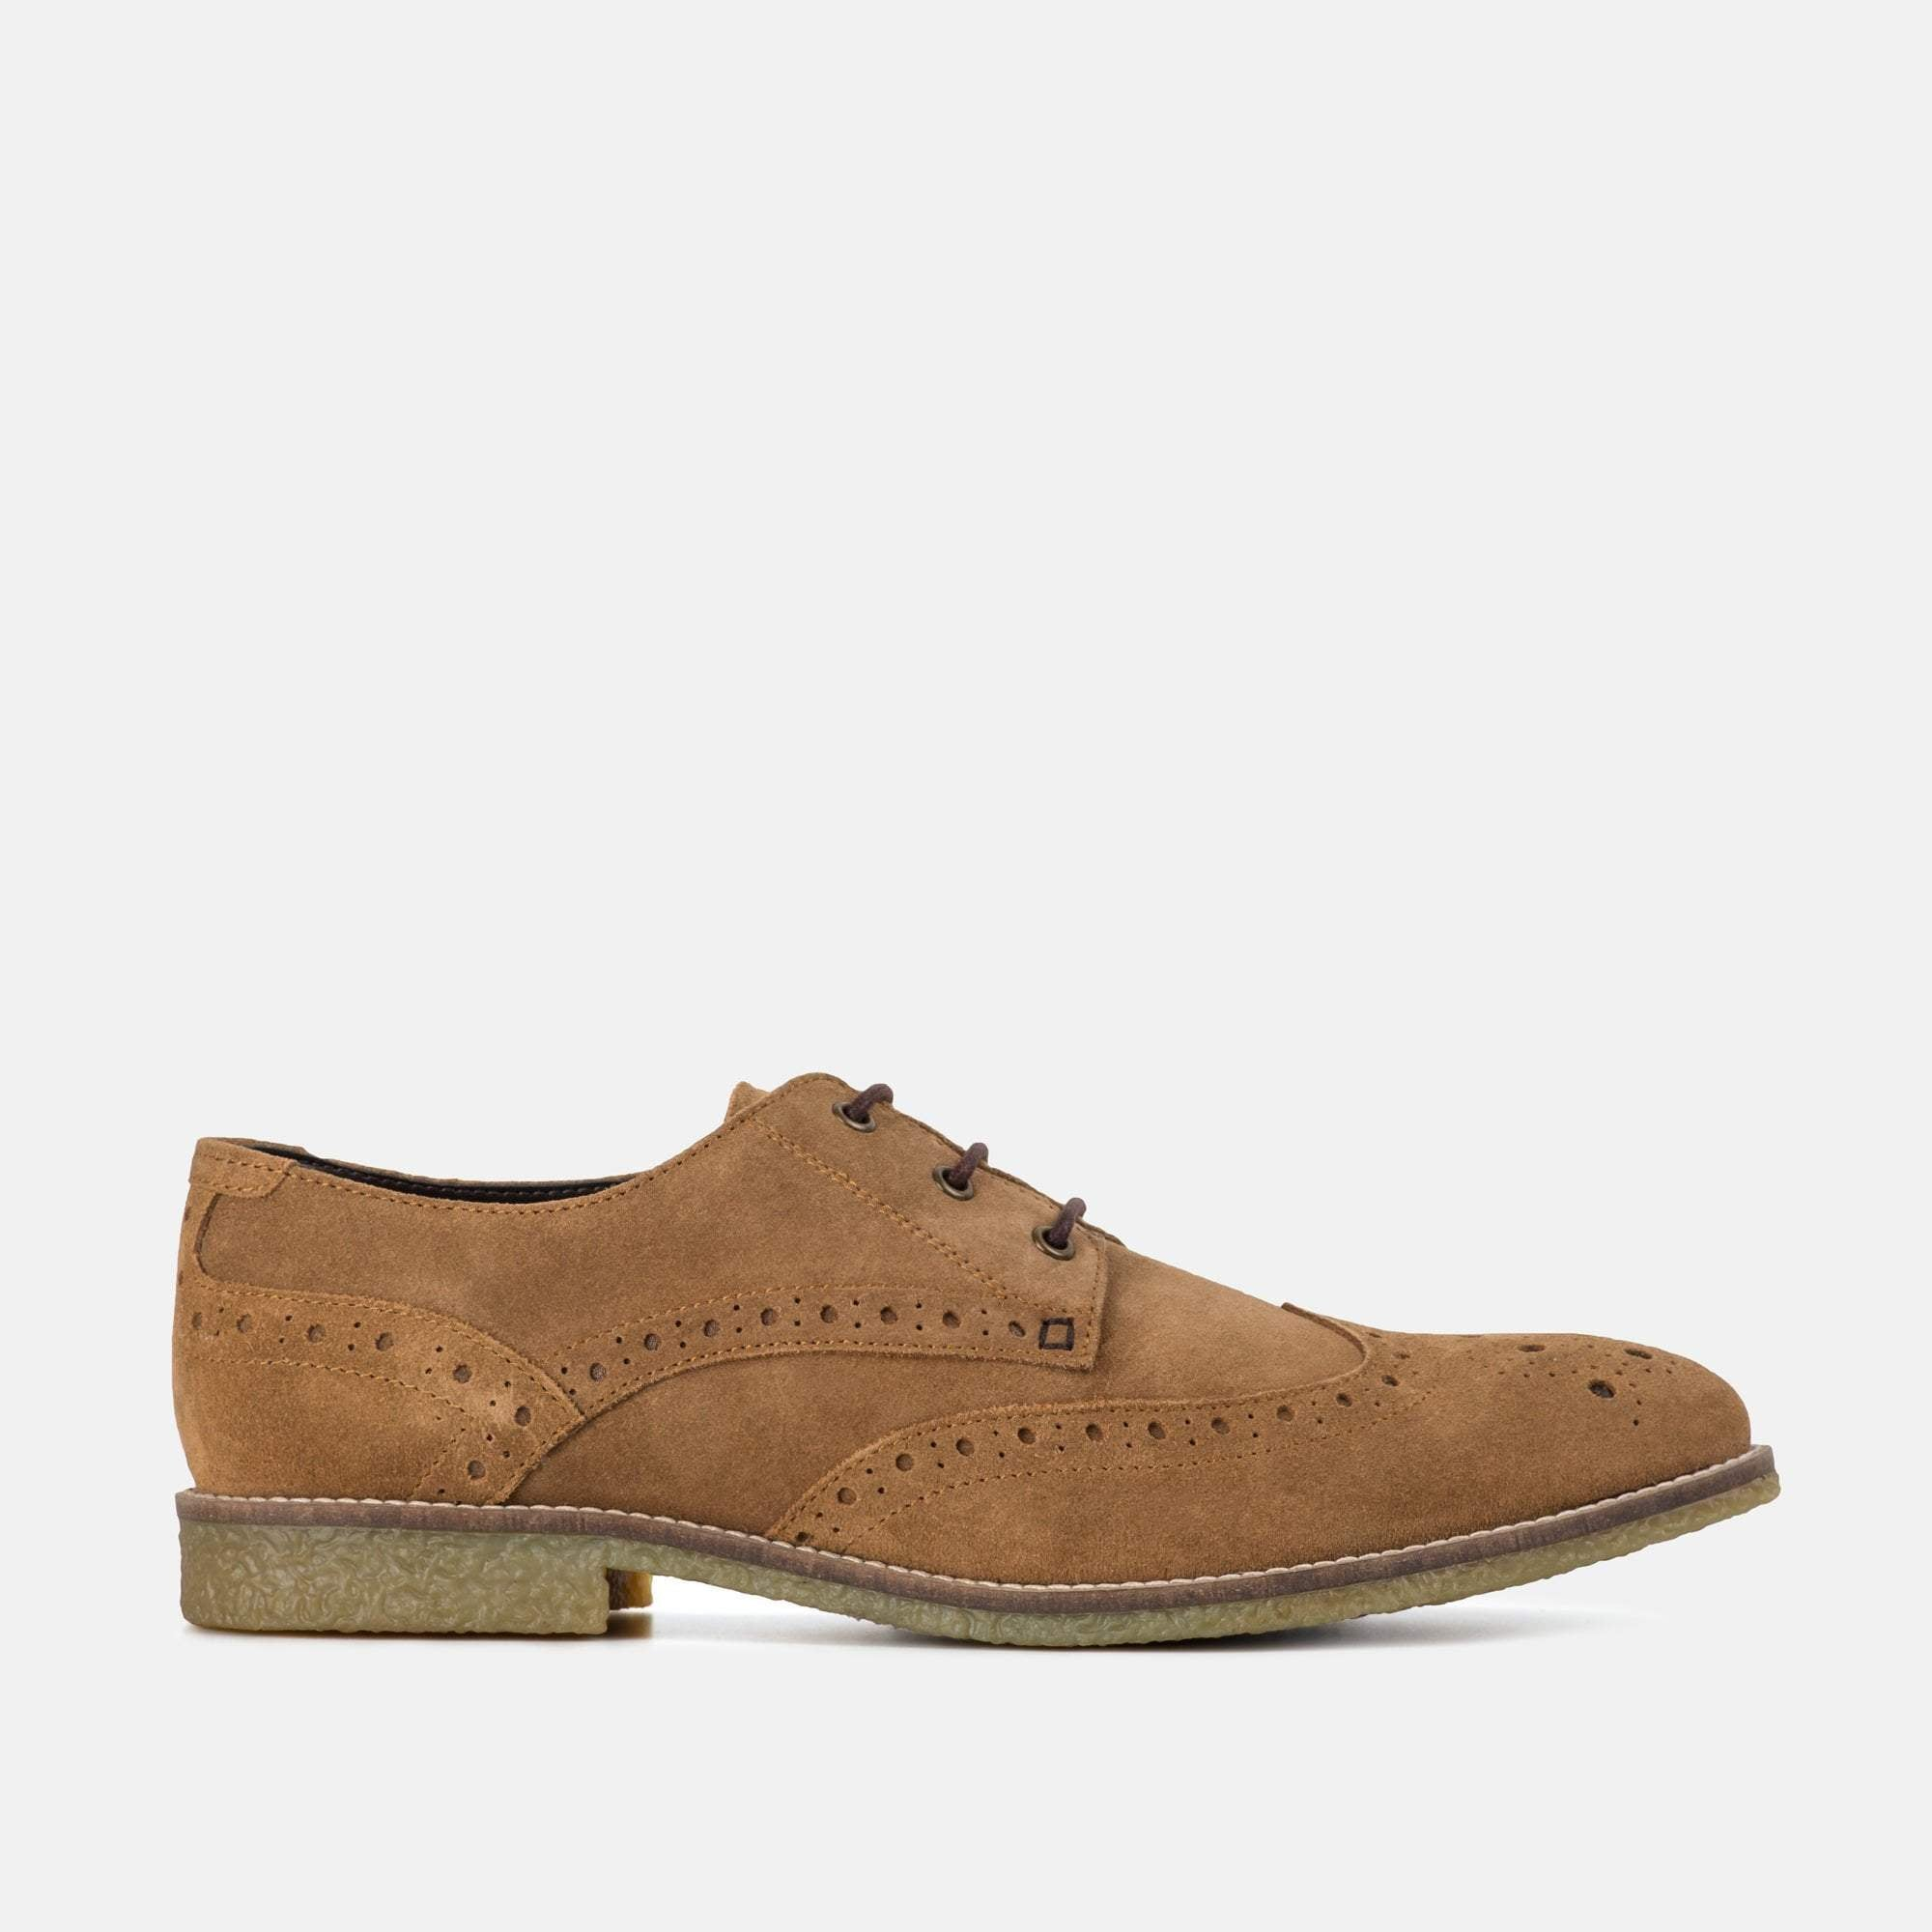 Redfoot Footwear UK 6 / EURO 39 / US 7 / Chestnut / Suede ROBINSON CHESTNUT